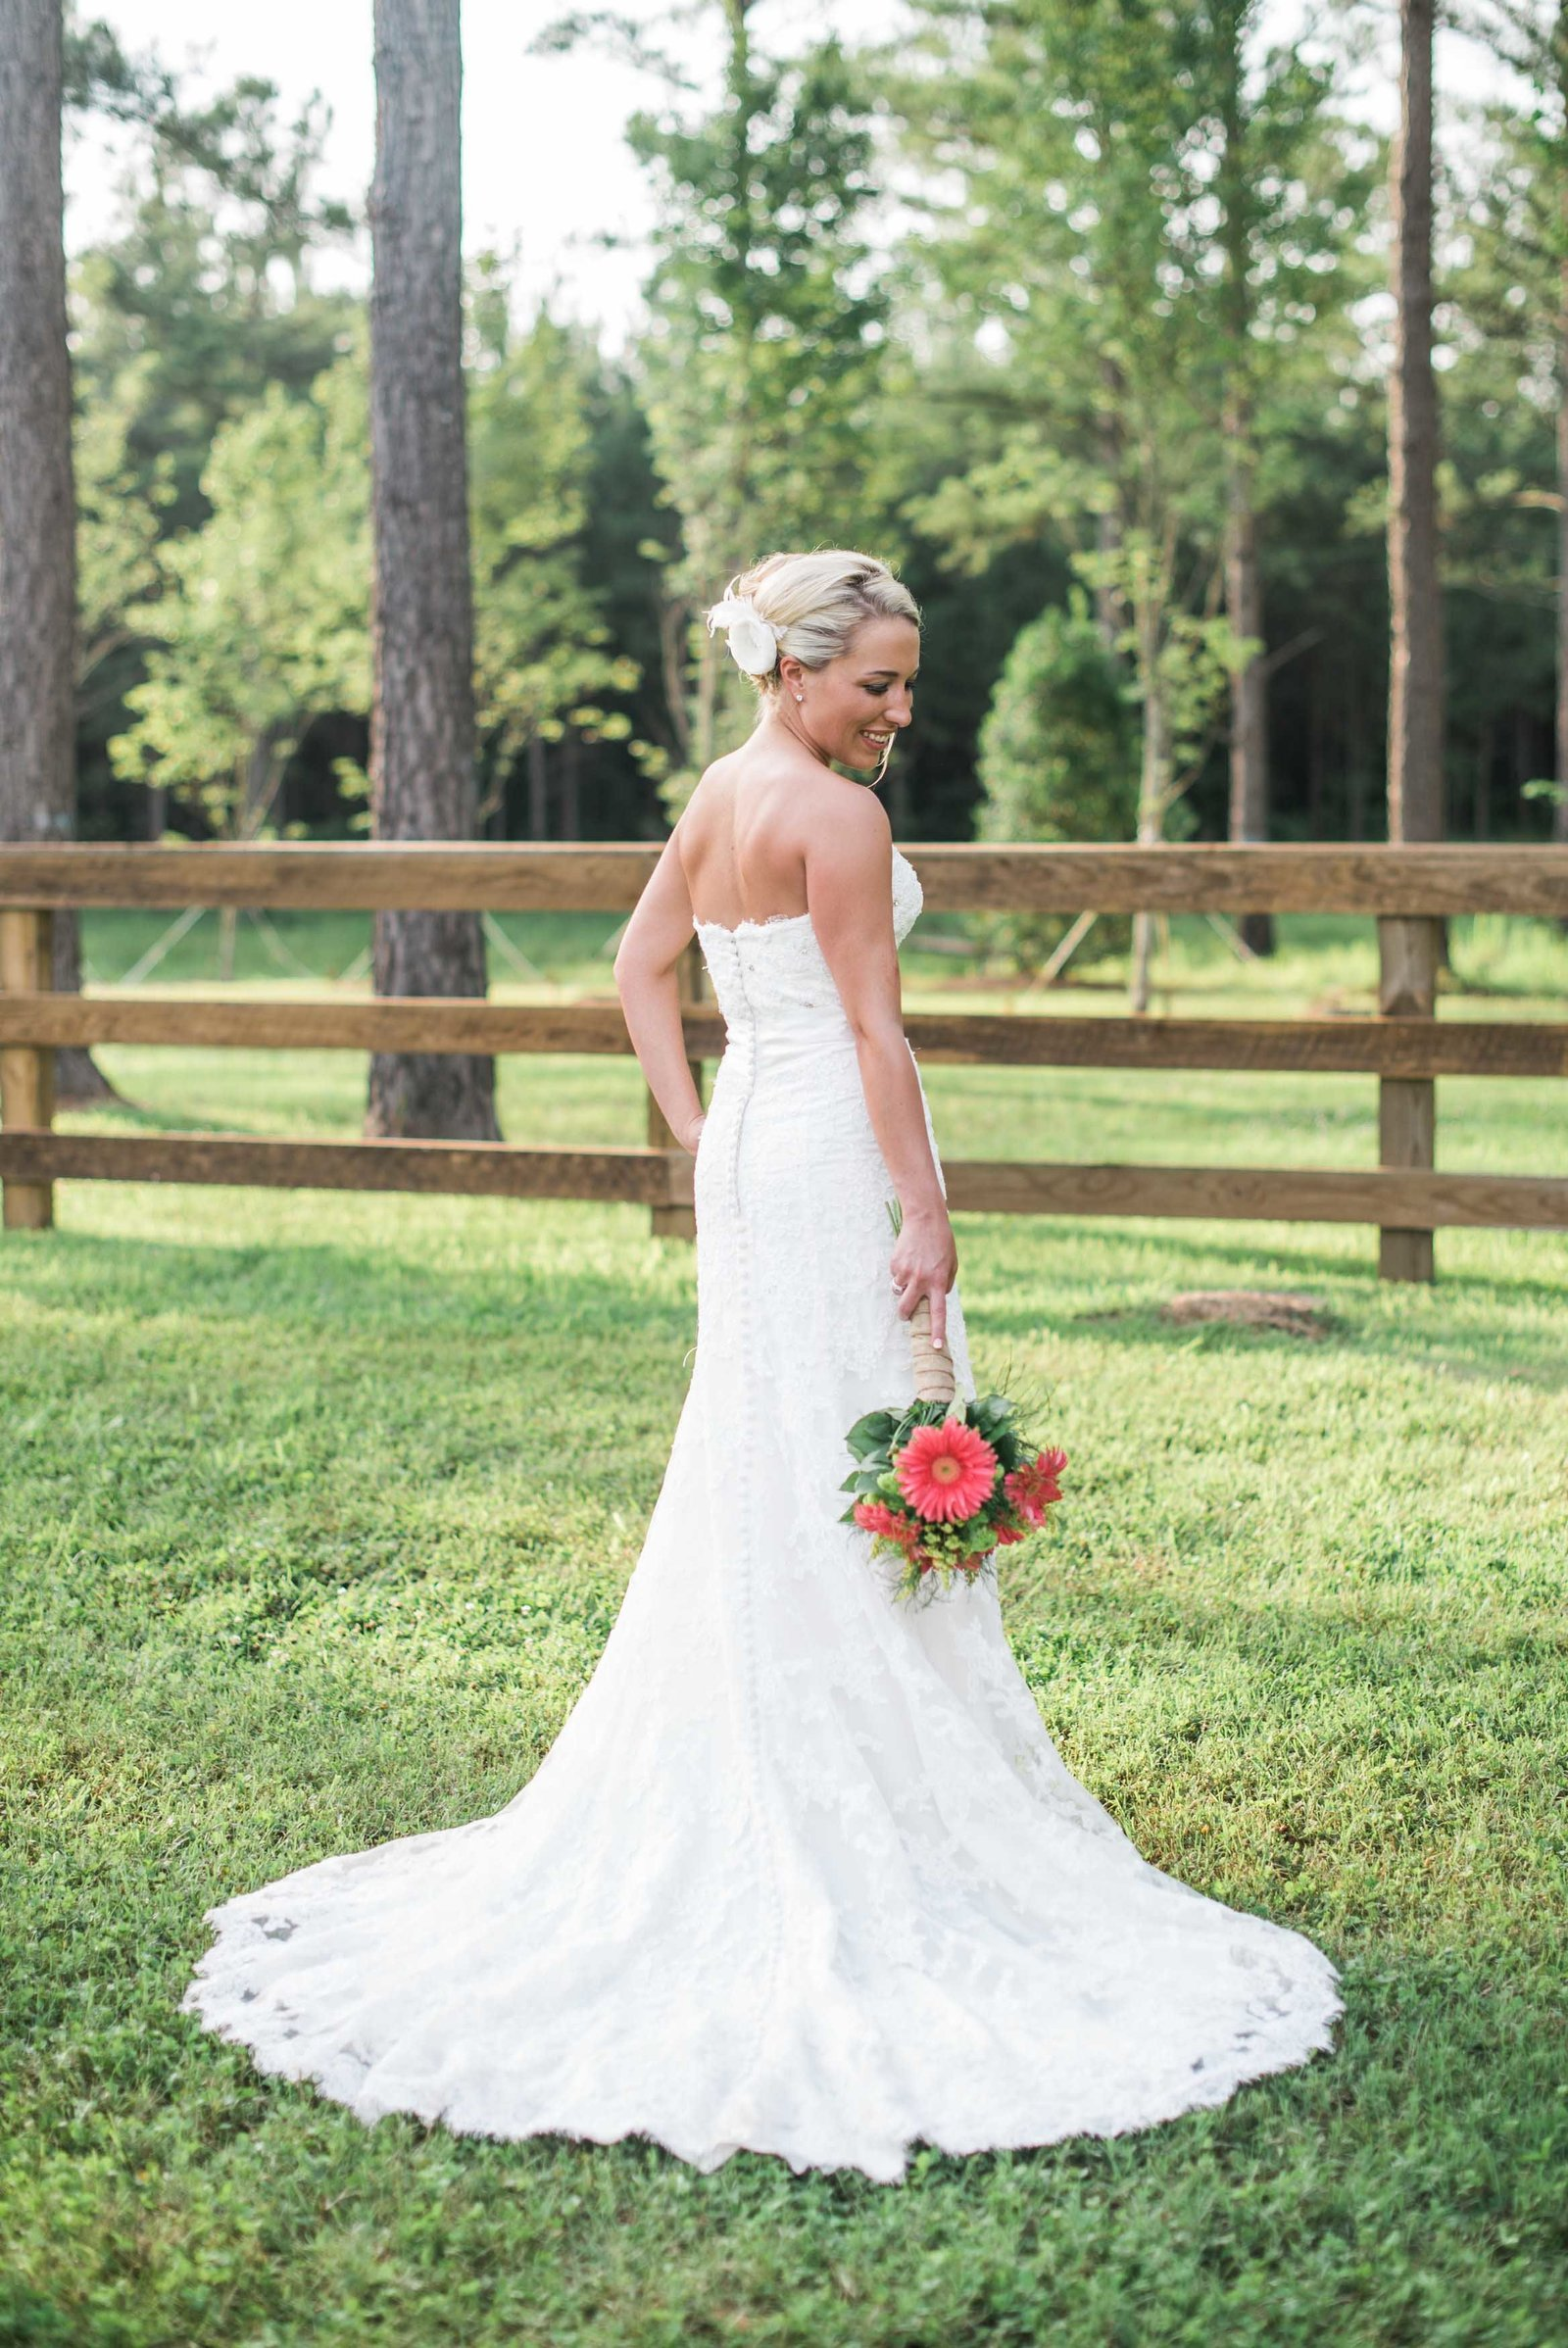 weddings atlanta photographer-06